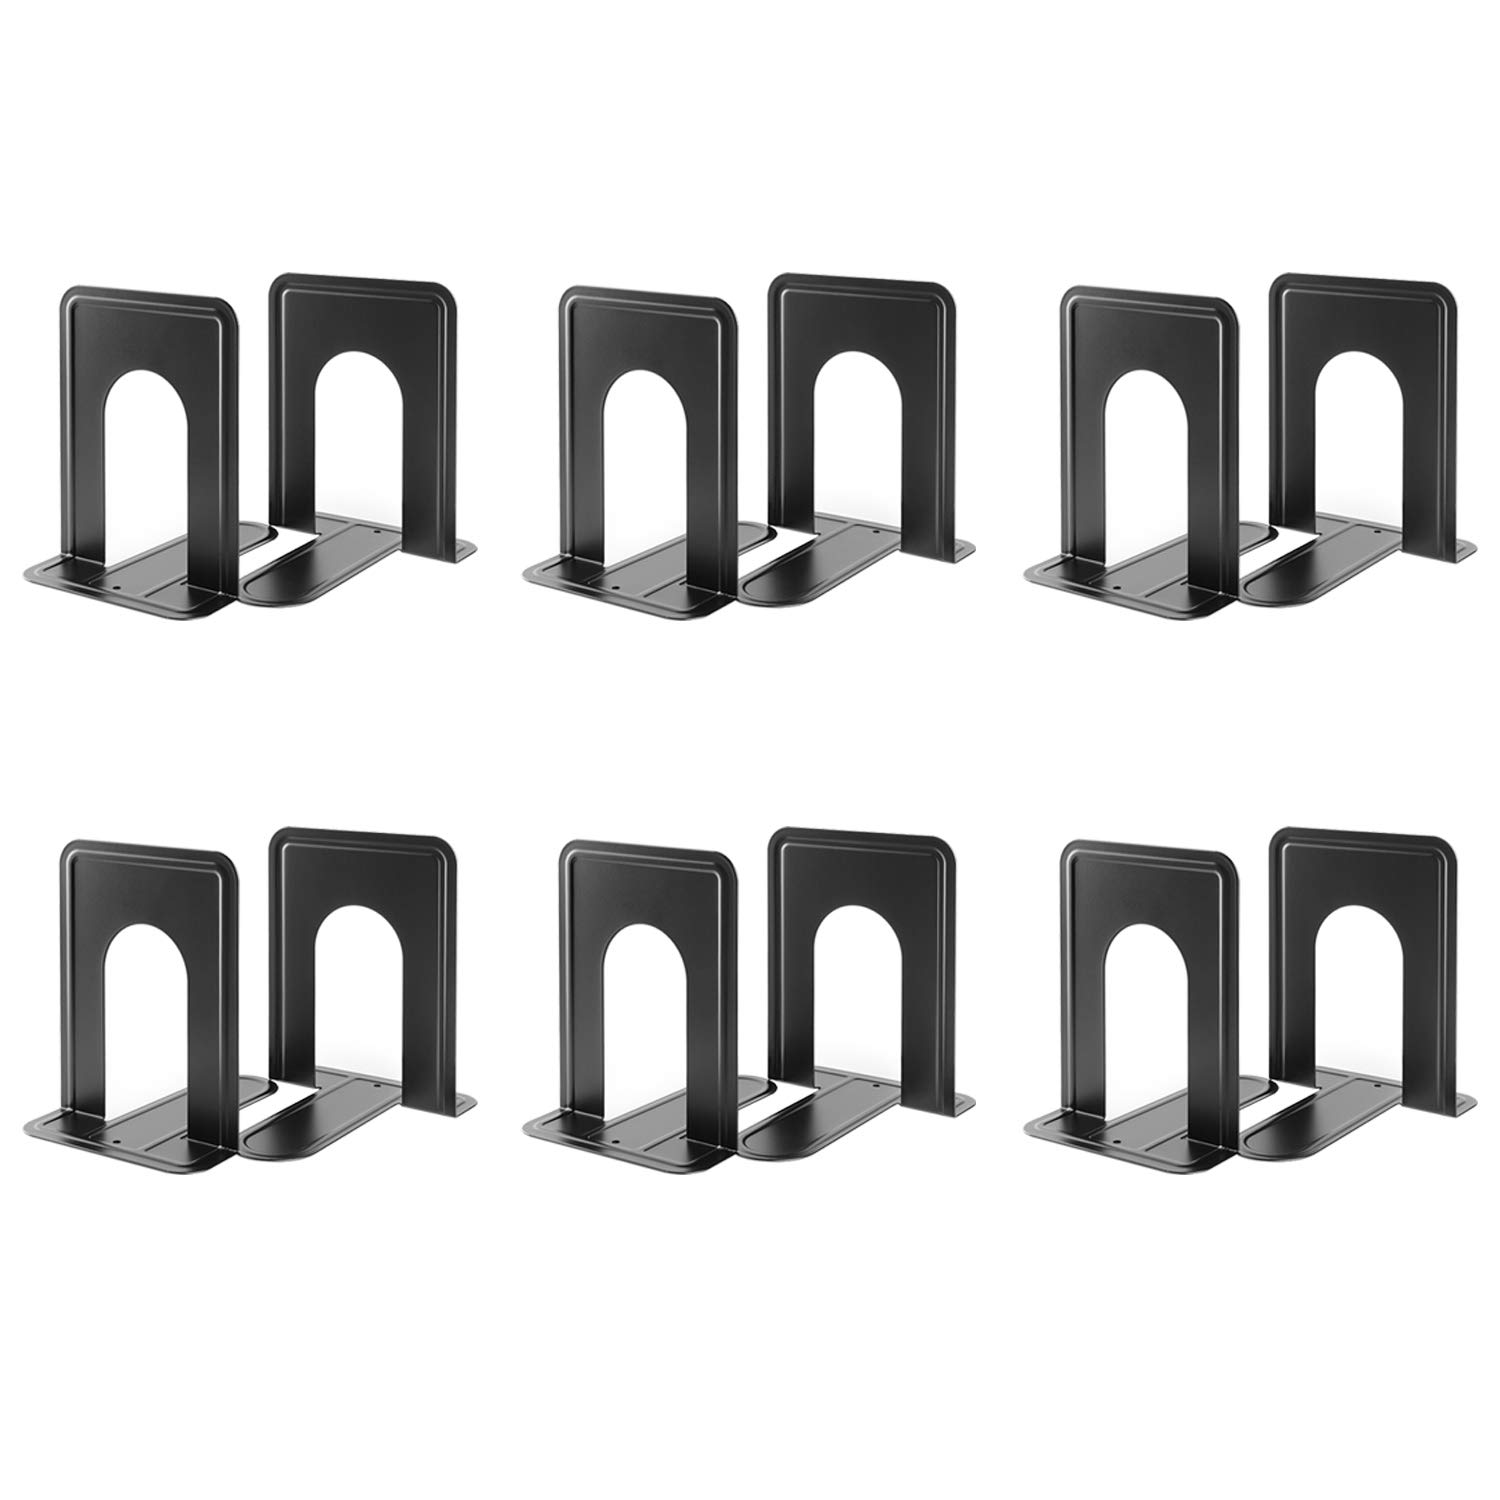 MaxGear Book Ends Universal Premium Bookends Non-Skid Heavy Duty Metal Books End, Bookend Pack, Book Stopper for Books/Movies/CDs/Video Games, 6 x 4.6 x 6 inches, Black (6 Pairs/12 Pieces, Large)